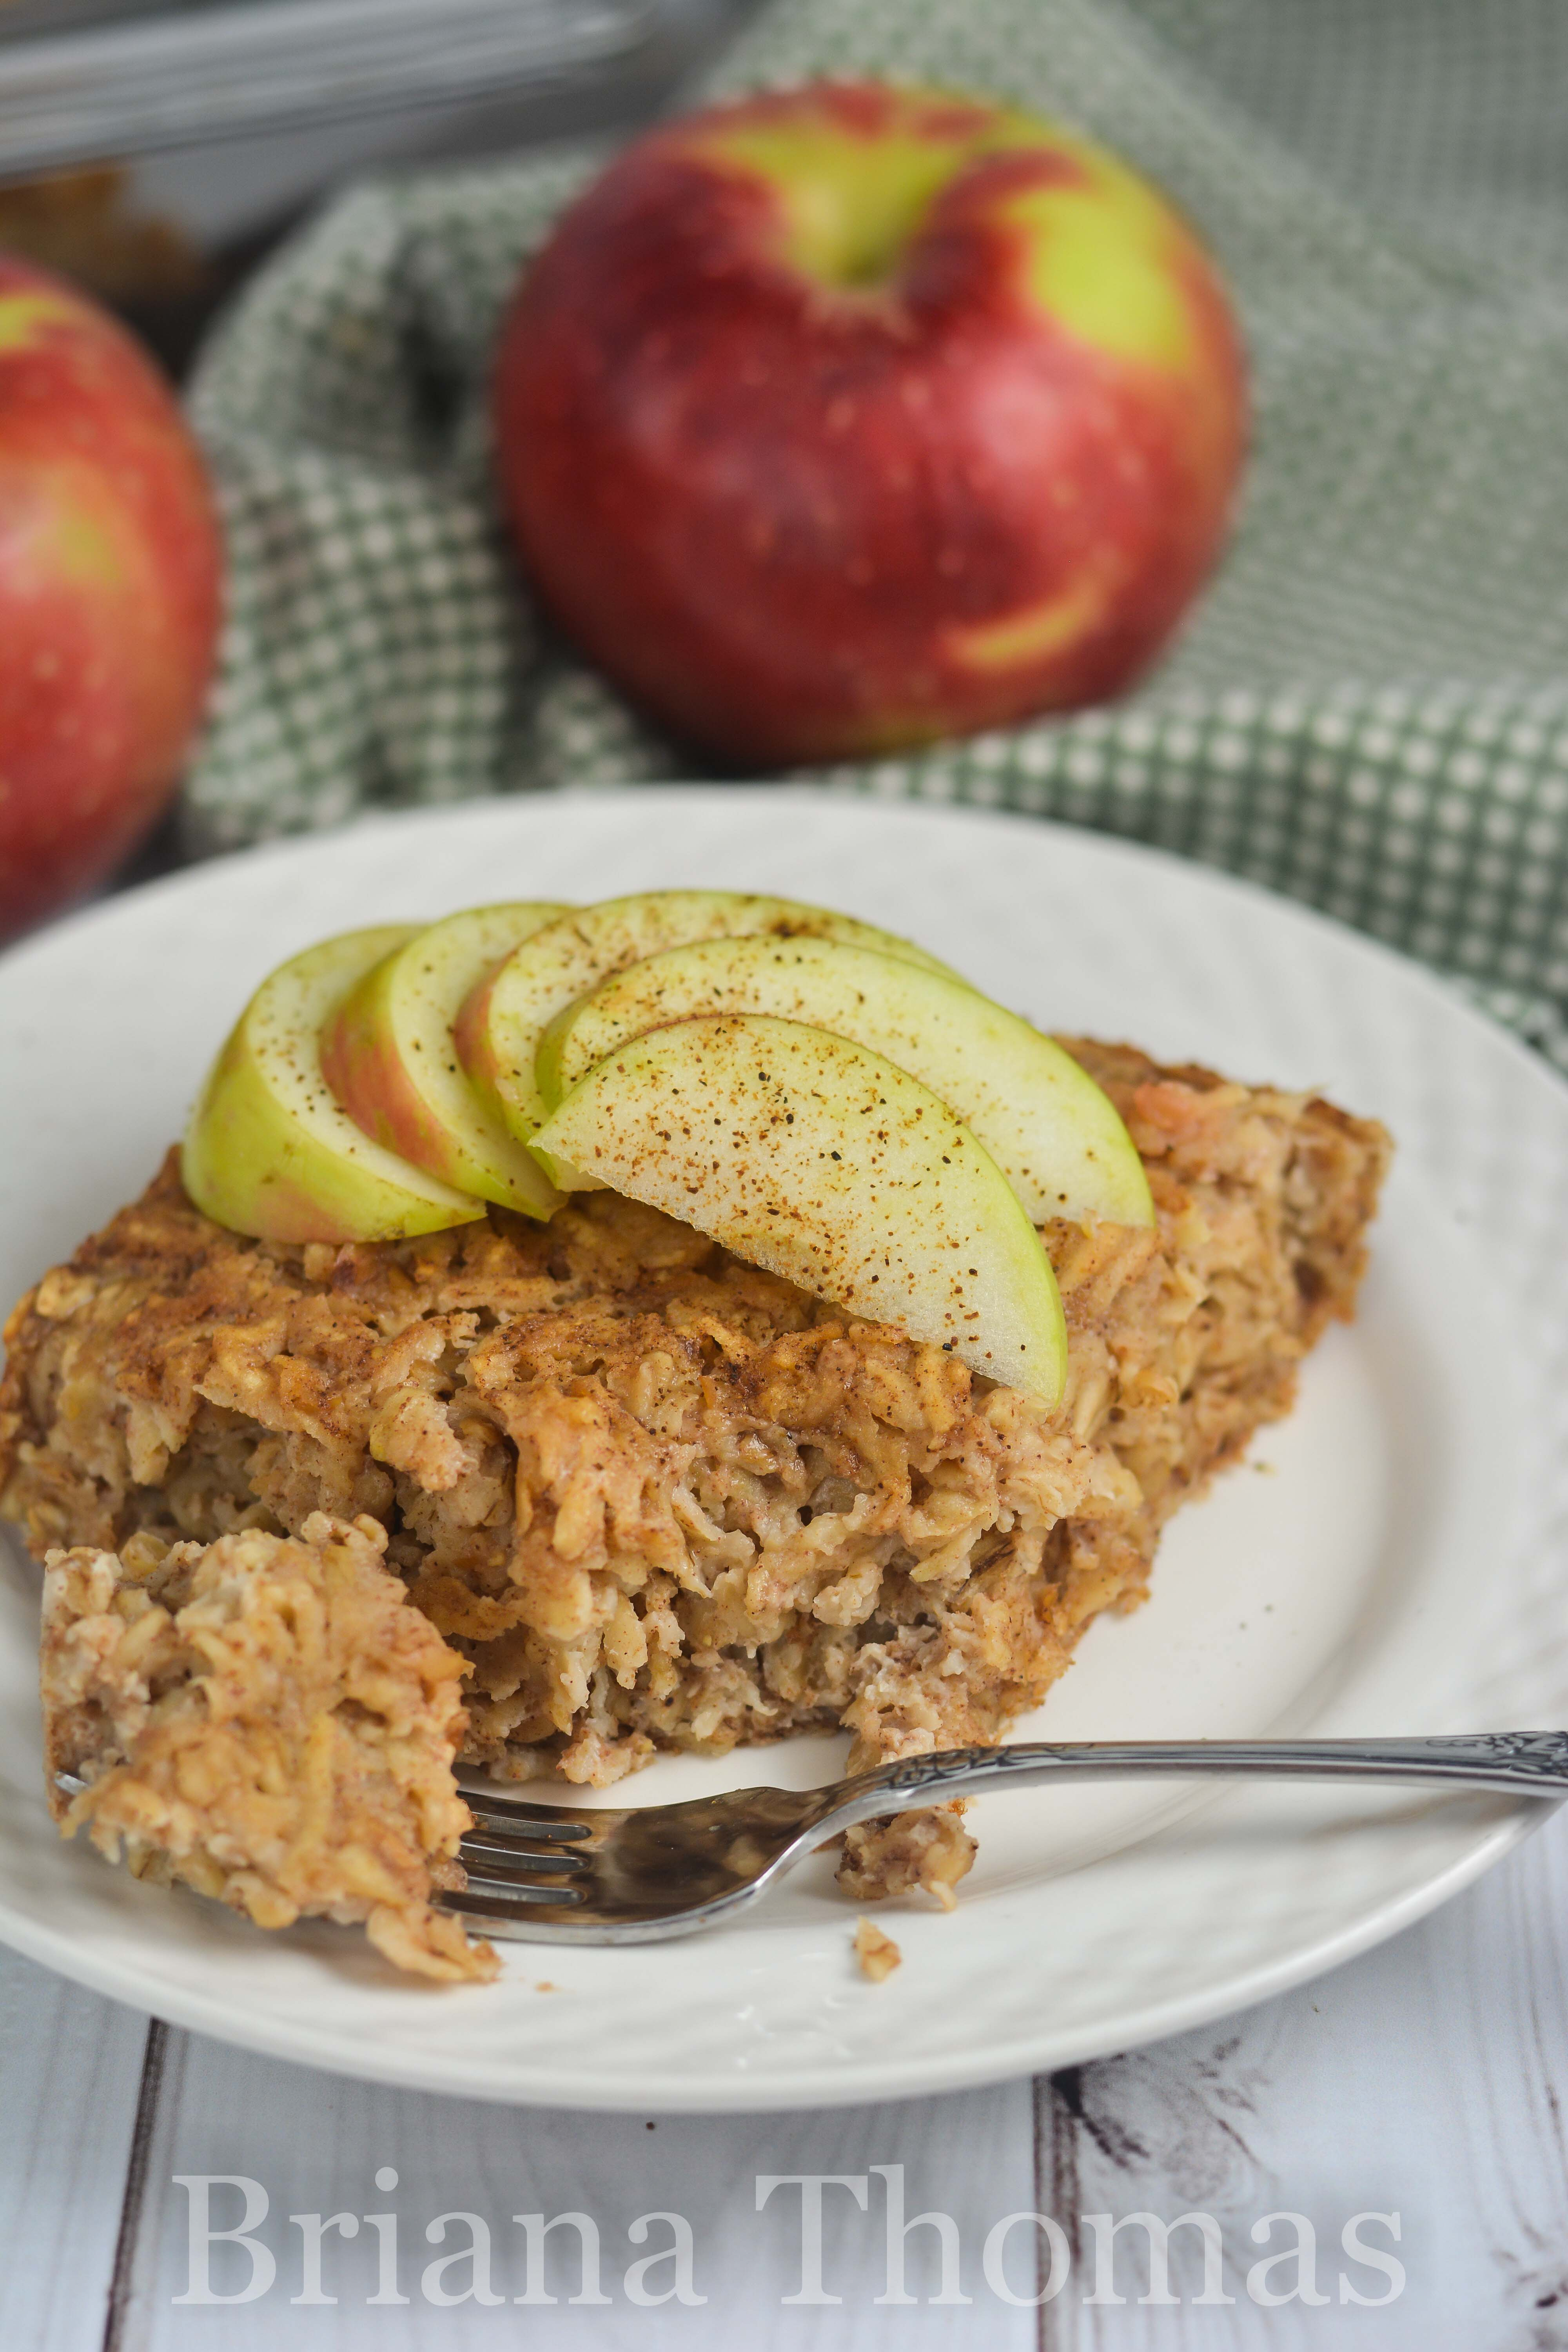 This Apple Pie Baked Oatmeal makes a lovely make-ahead breakfast and keeps well throughout the week! THM:E, no sugar added, gluten/dairy/nut free options